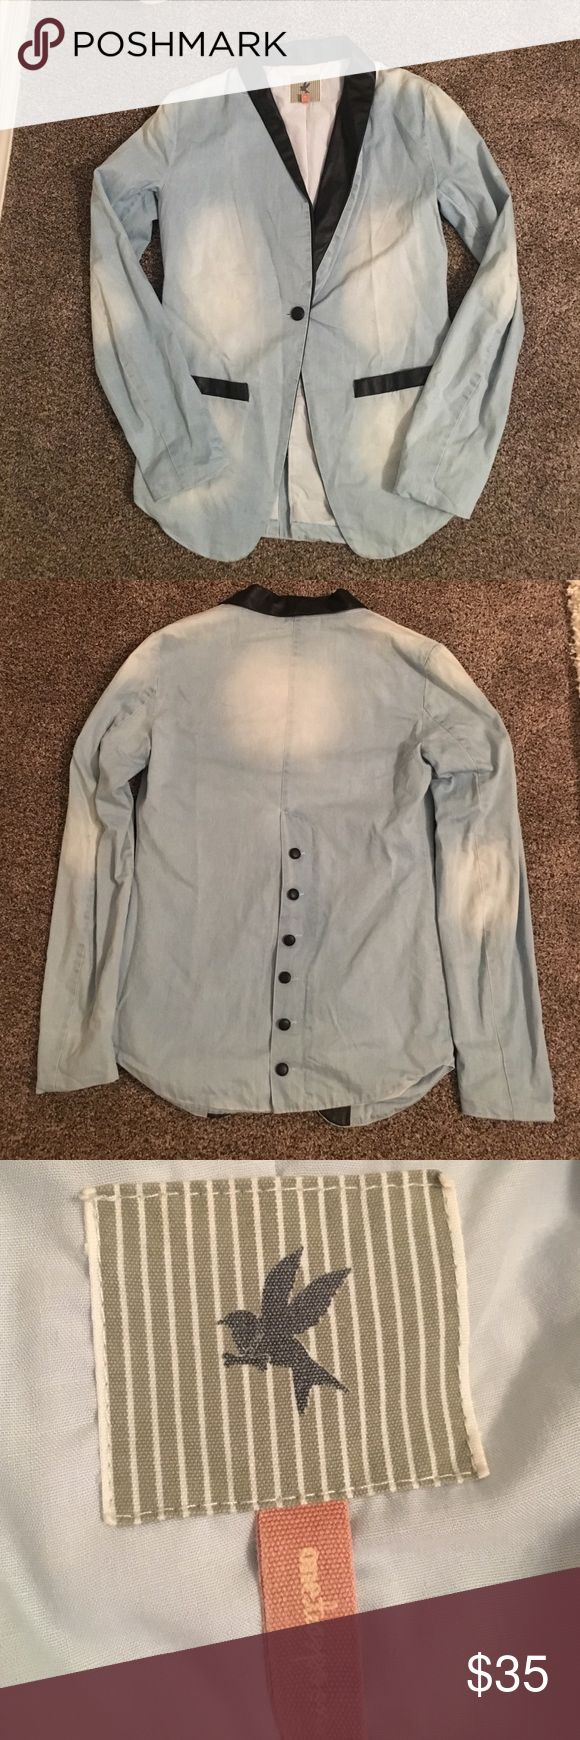 One Teaspoon Chambray blazer size small One teaspoon boyfriend chambray and black leatherette accents size small in great condition! Blazer makes an amazing addition to any wardrobe! One Teaspoon Jackets & Coats Blazers